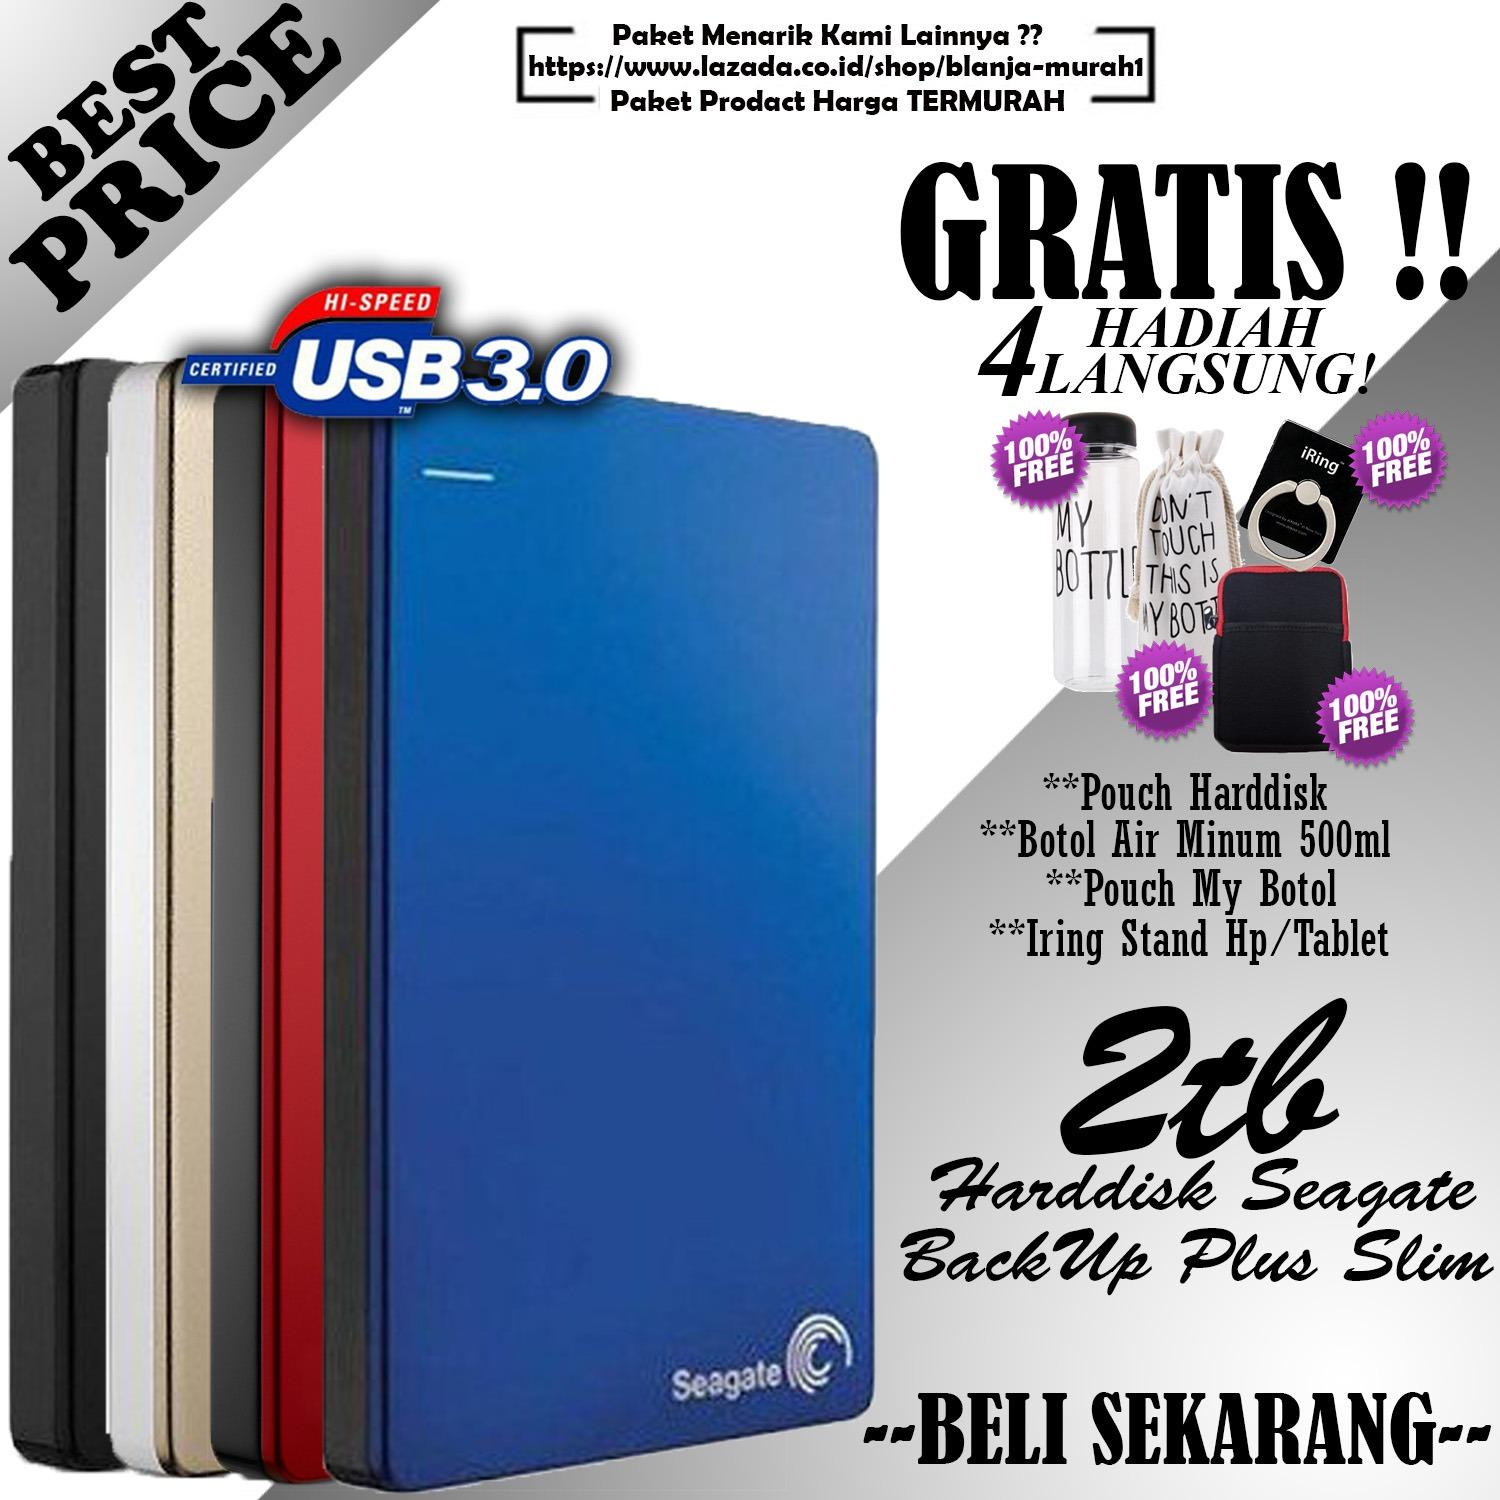 Jual Seagate Backup Plus Slim 2Tb Hdd Hd Hardisk External 2 5 Gratis Pouch Harddisk Ext My Botol Air Minum 500Ml Sarung Pouch My Bottle Iring Stand Hp Tablet Import